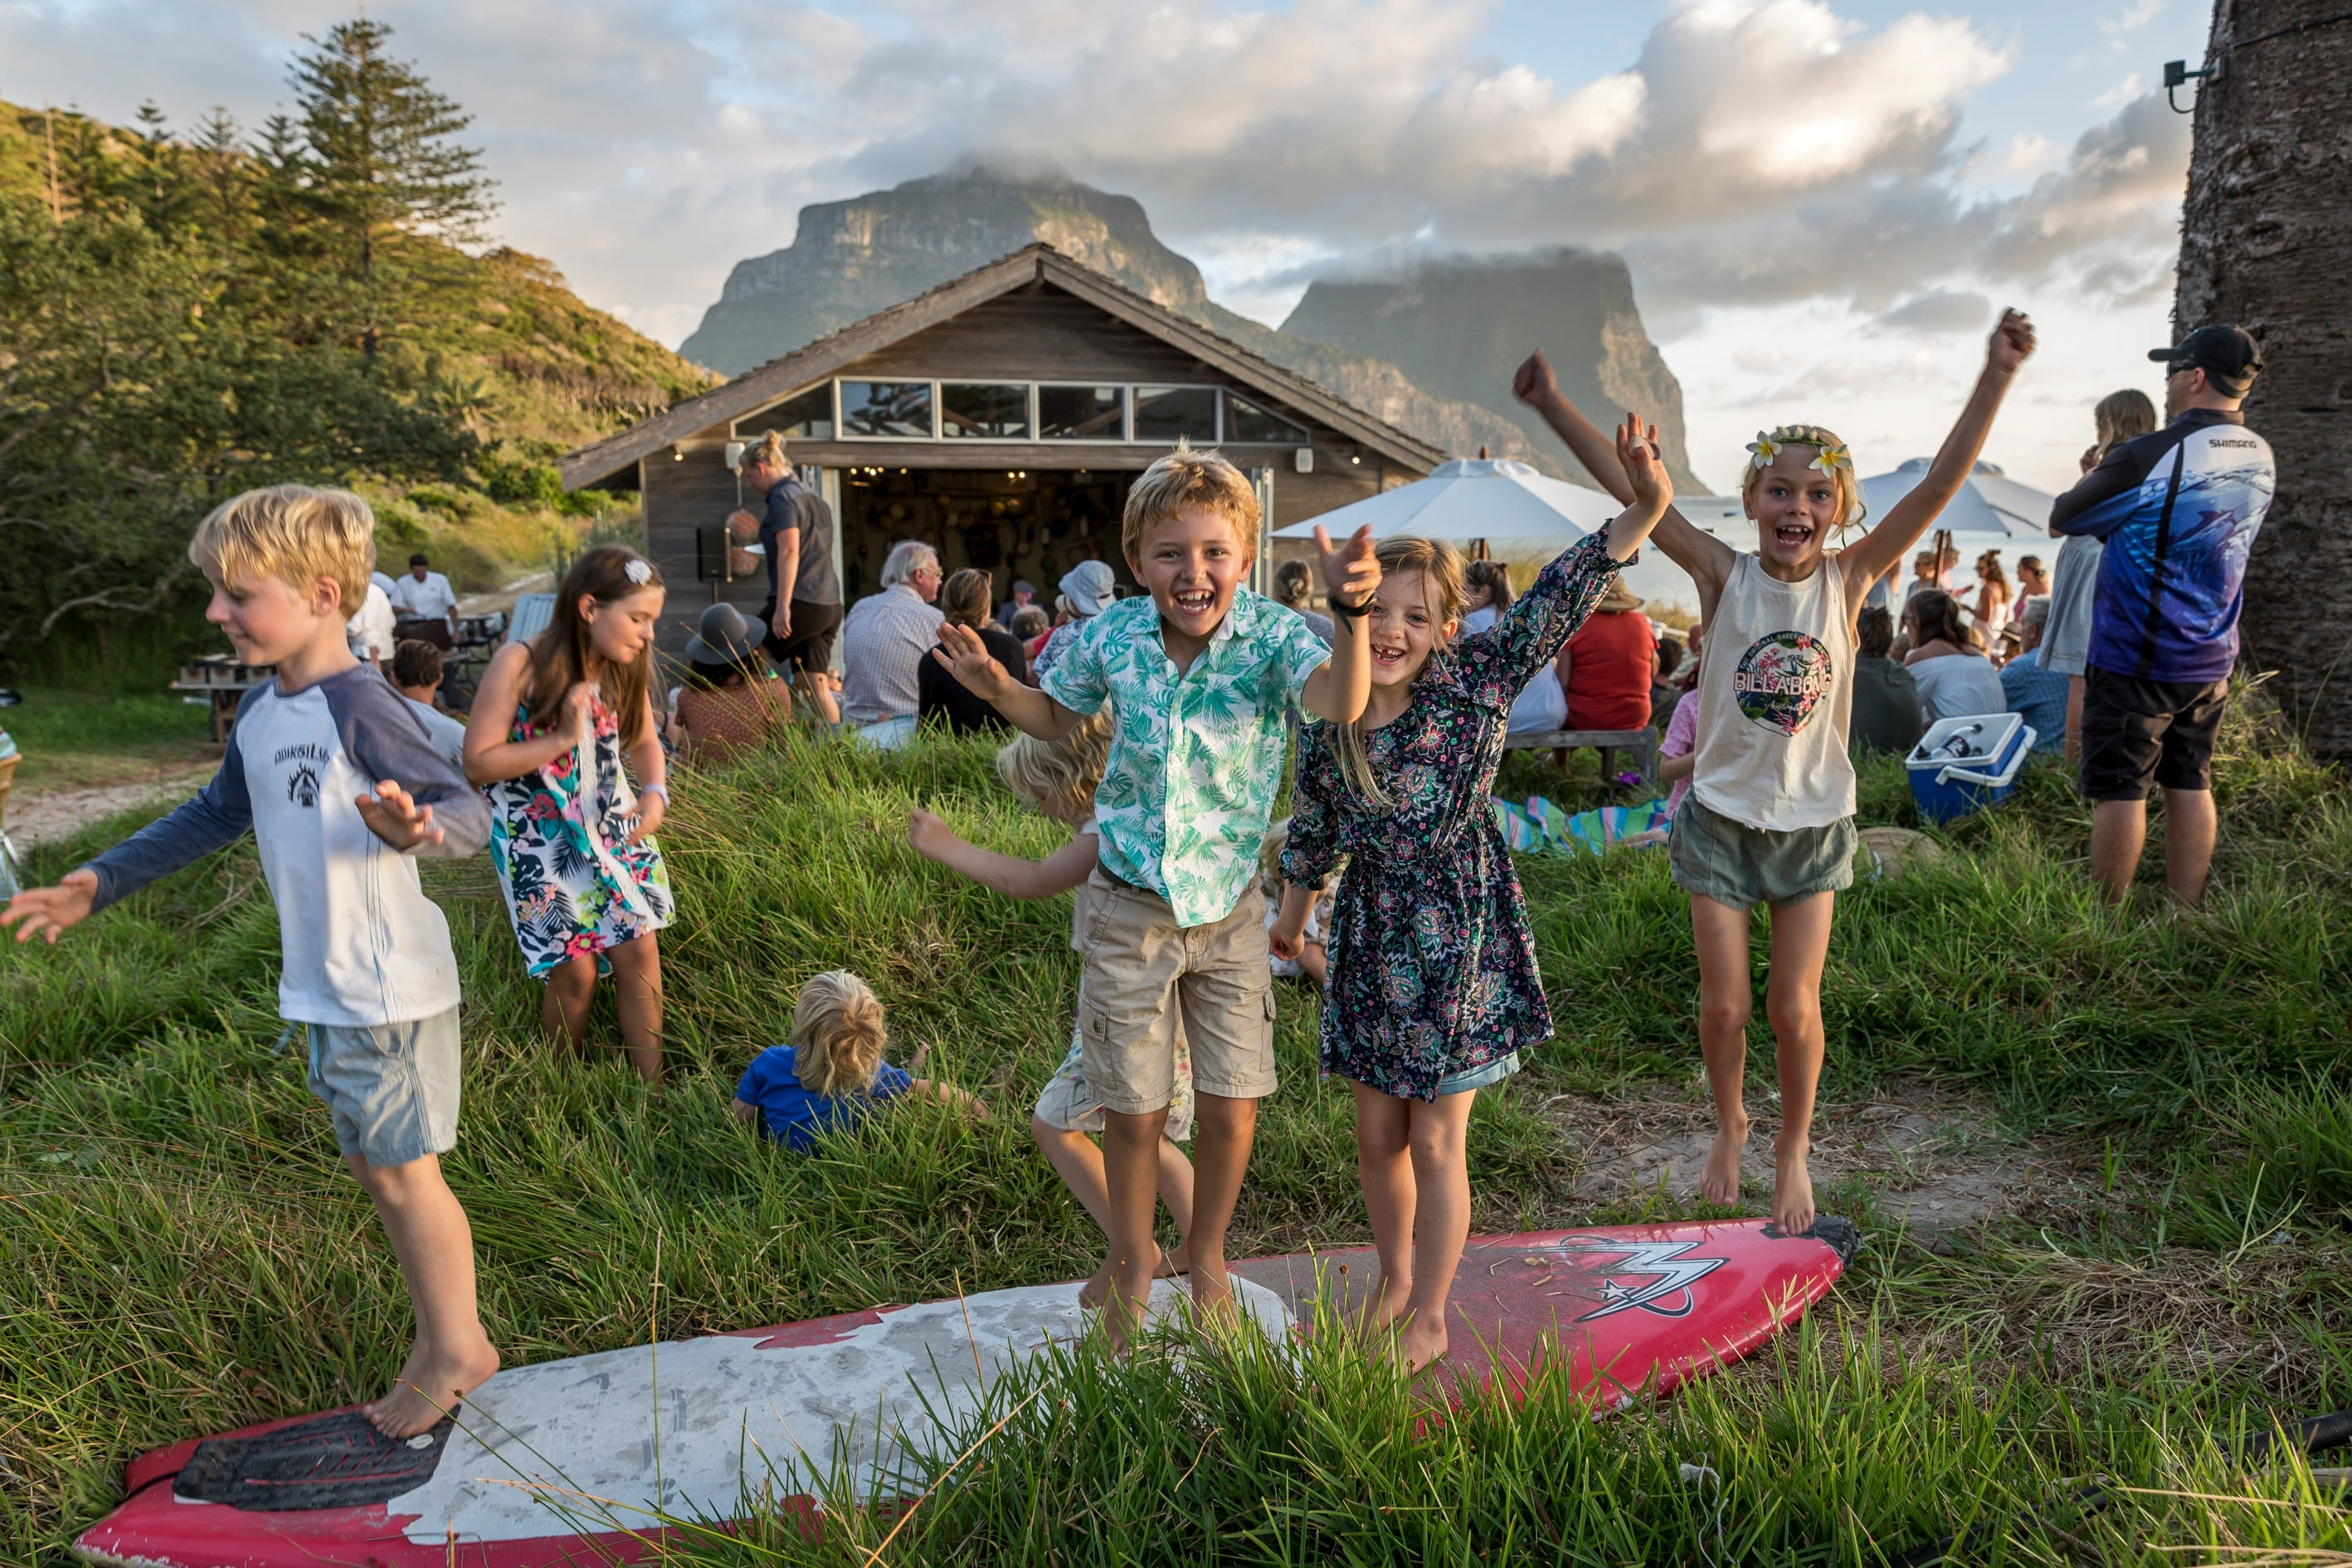 Spring Festival of Lord Howe Island - Wagga Wagga Accommodation